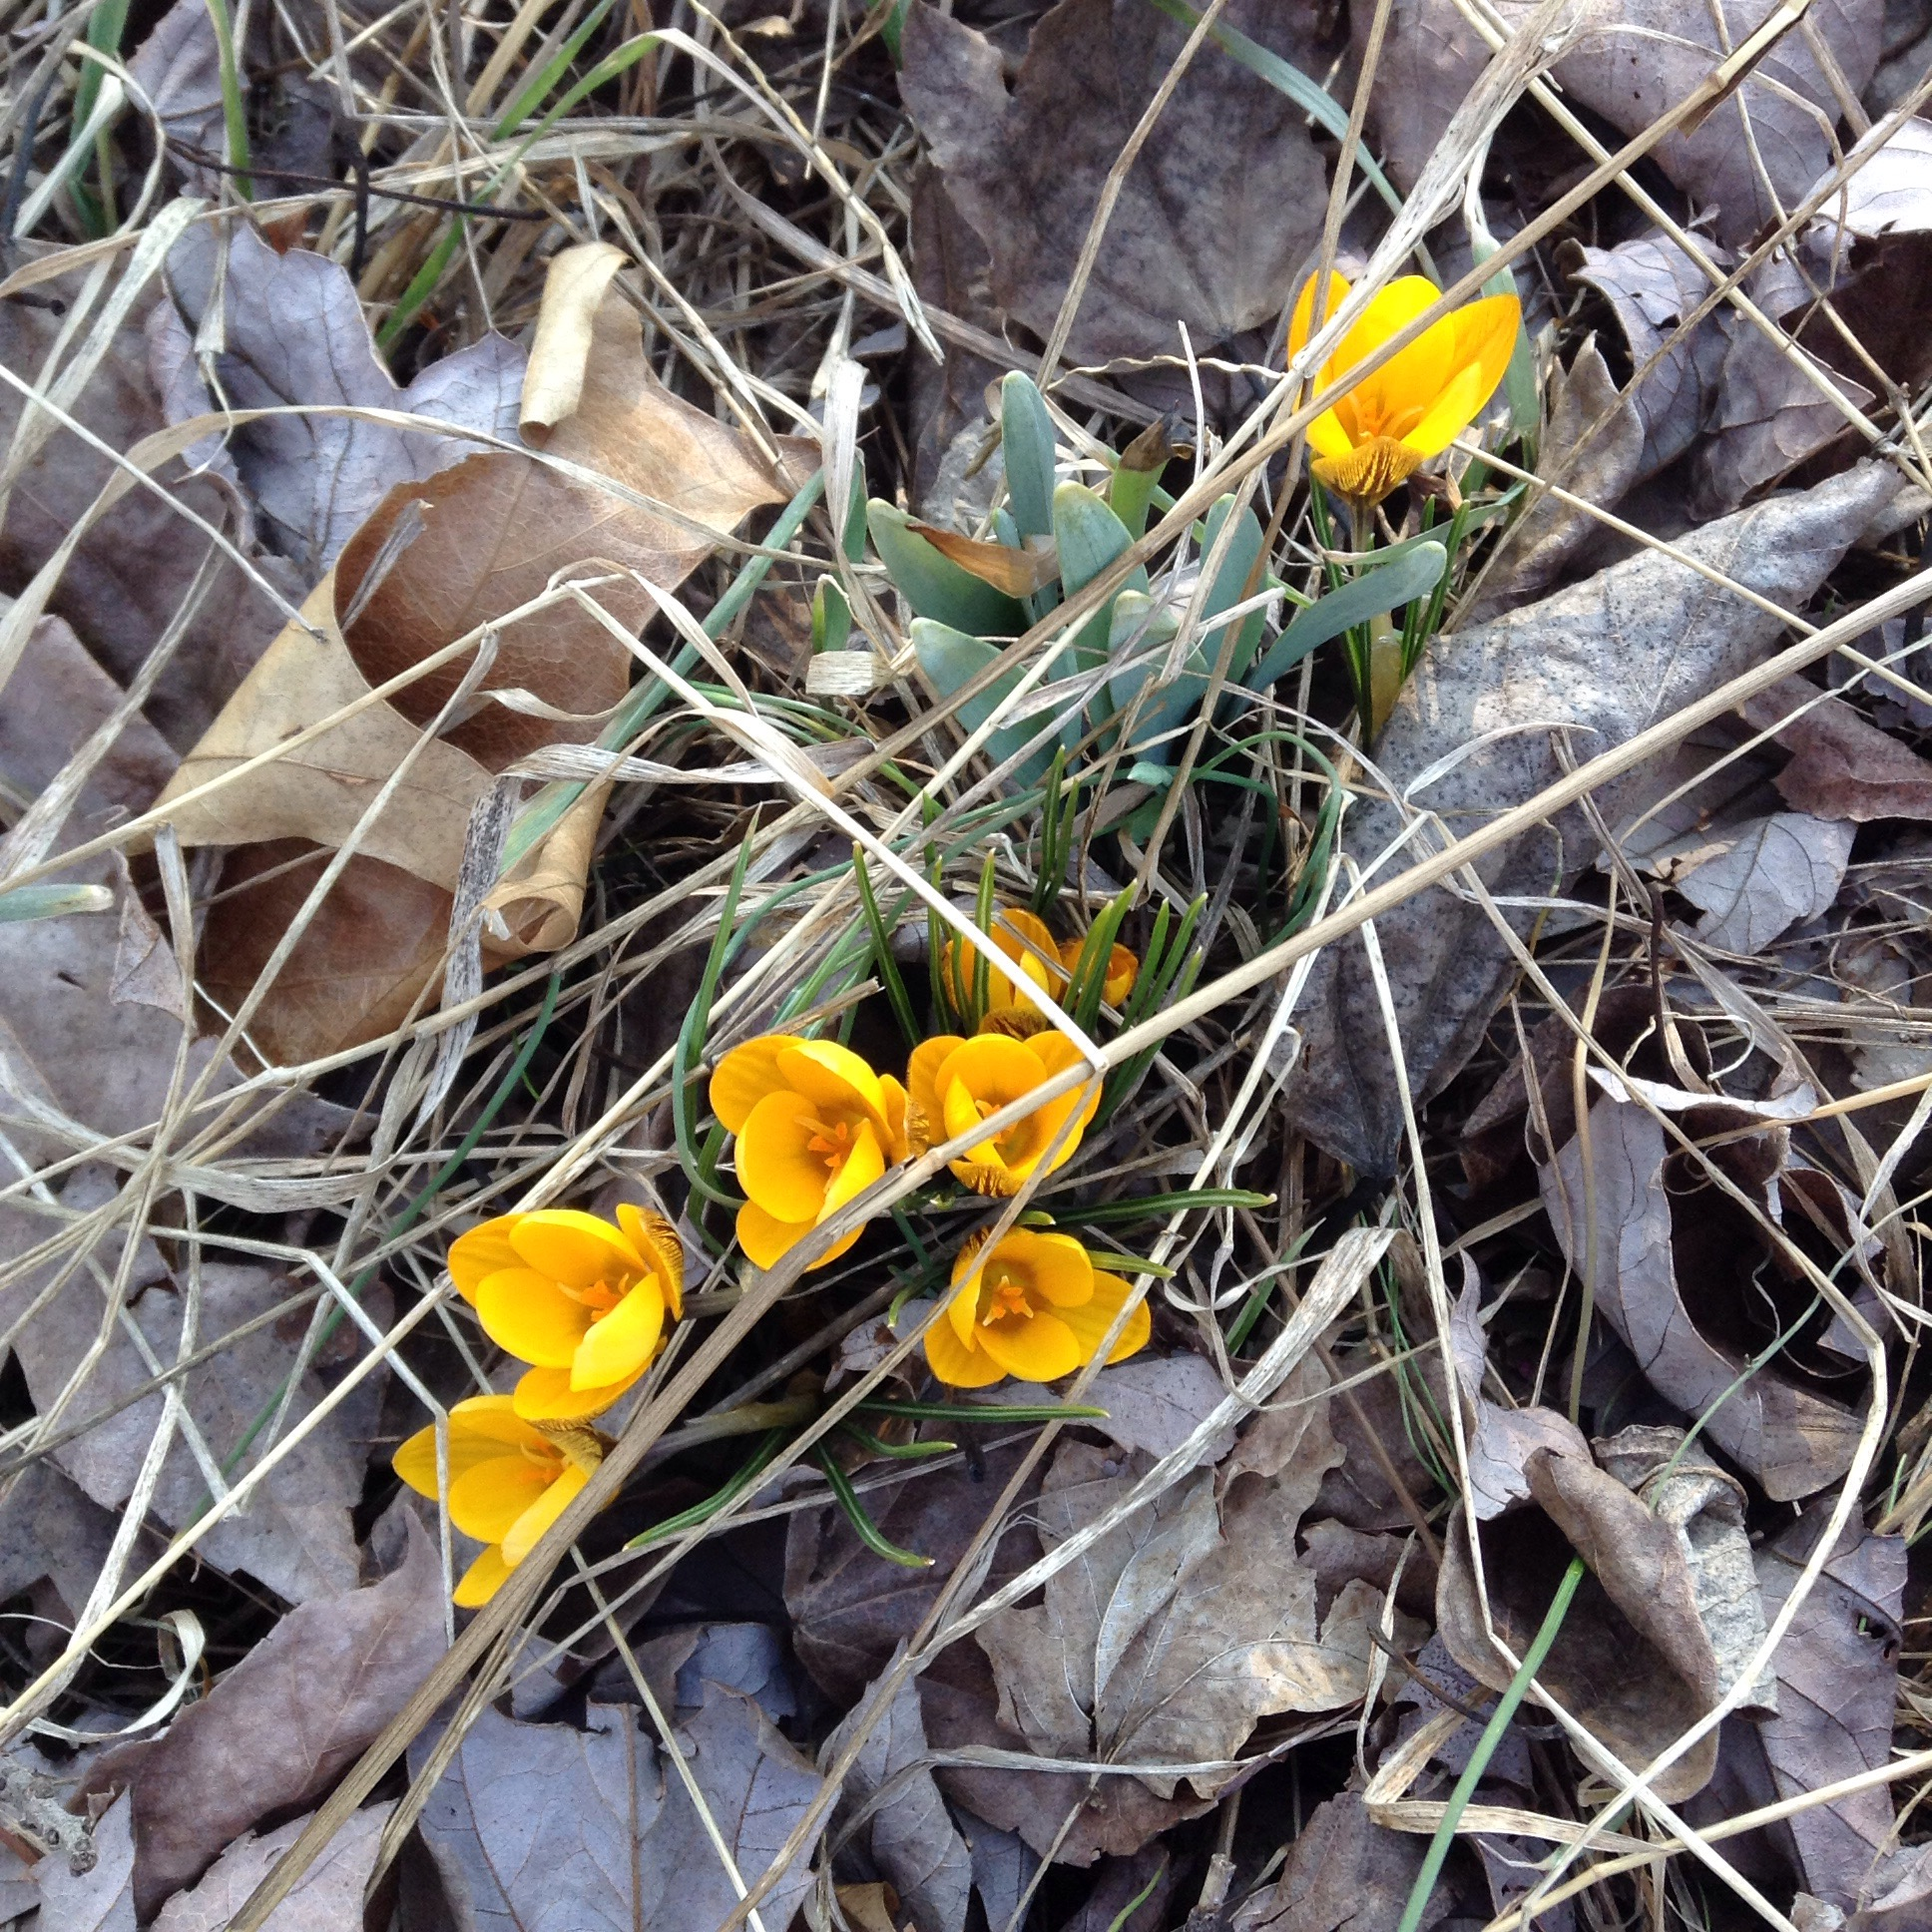 yellow crocus blooming in leaves from last fall